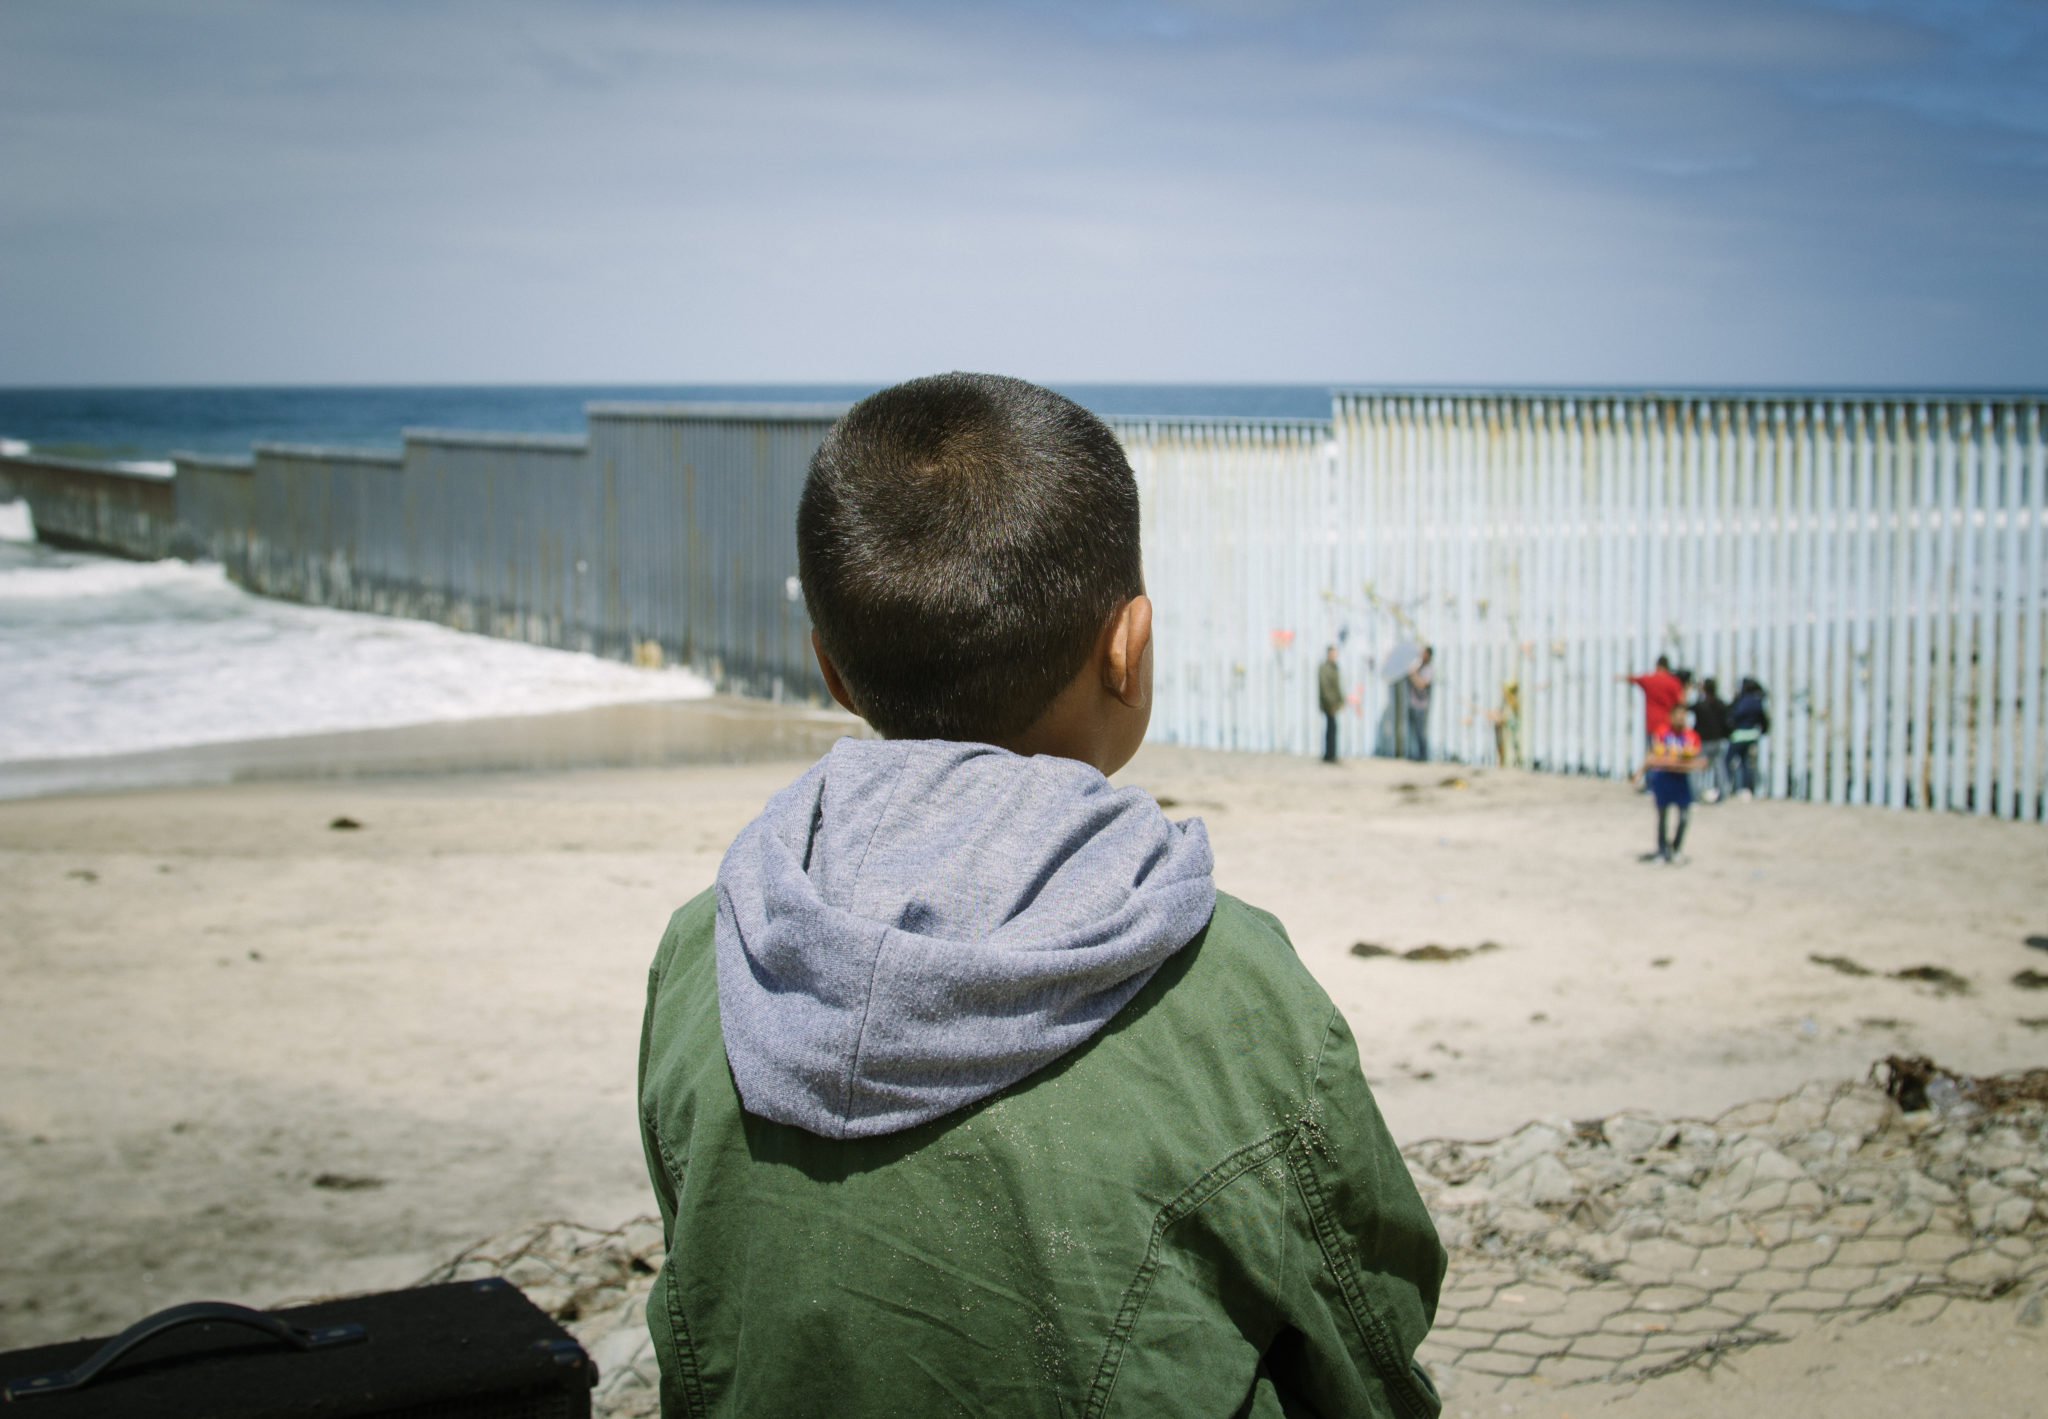 USA: mother and son separated by border authorities